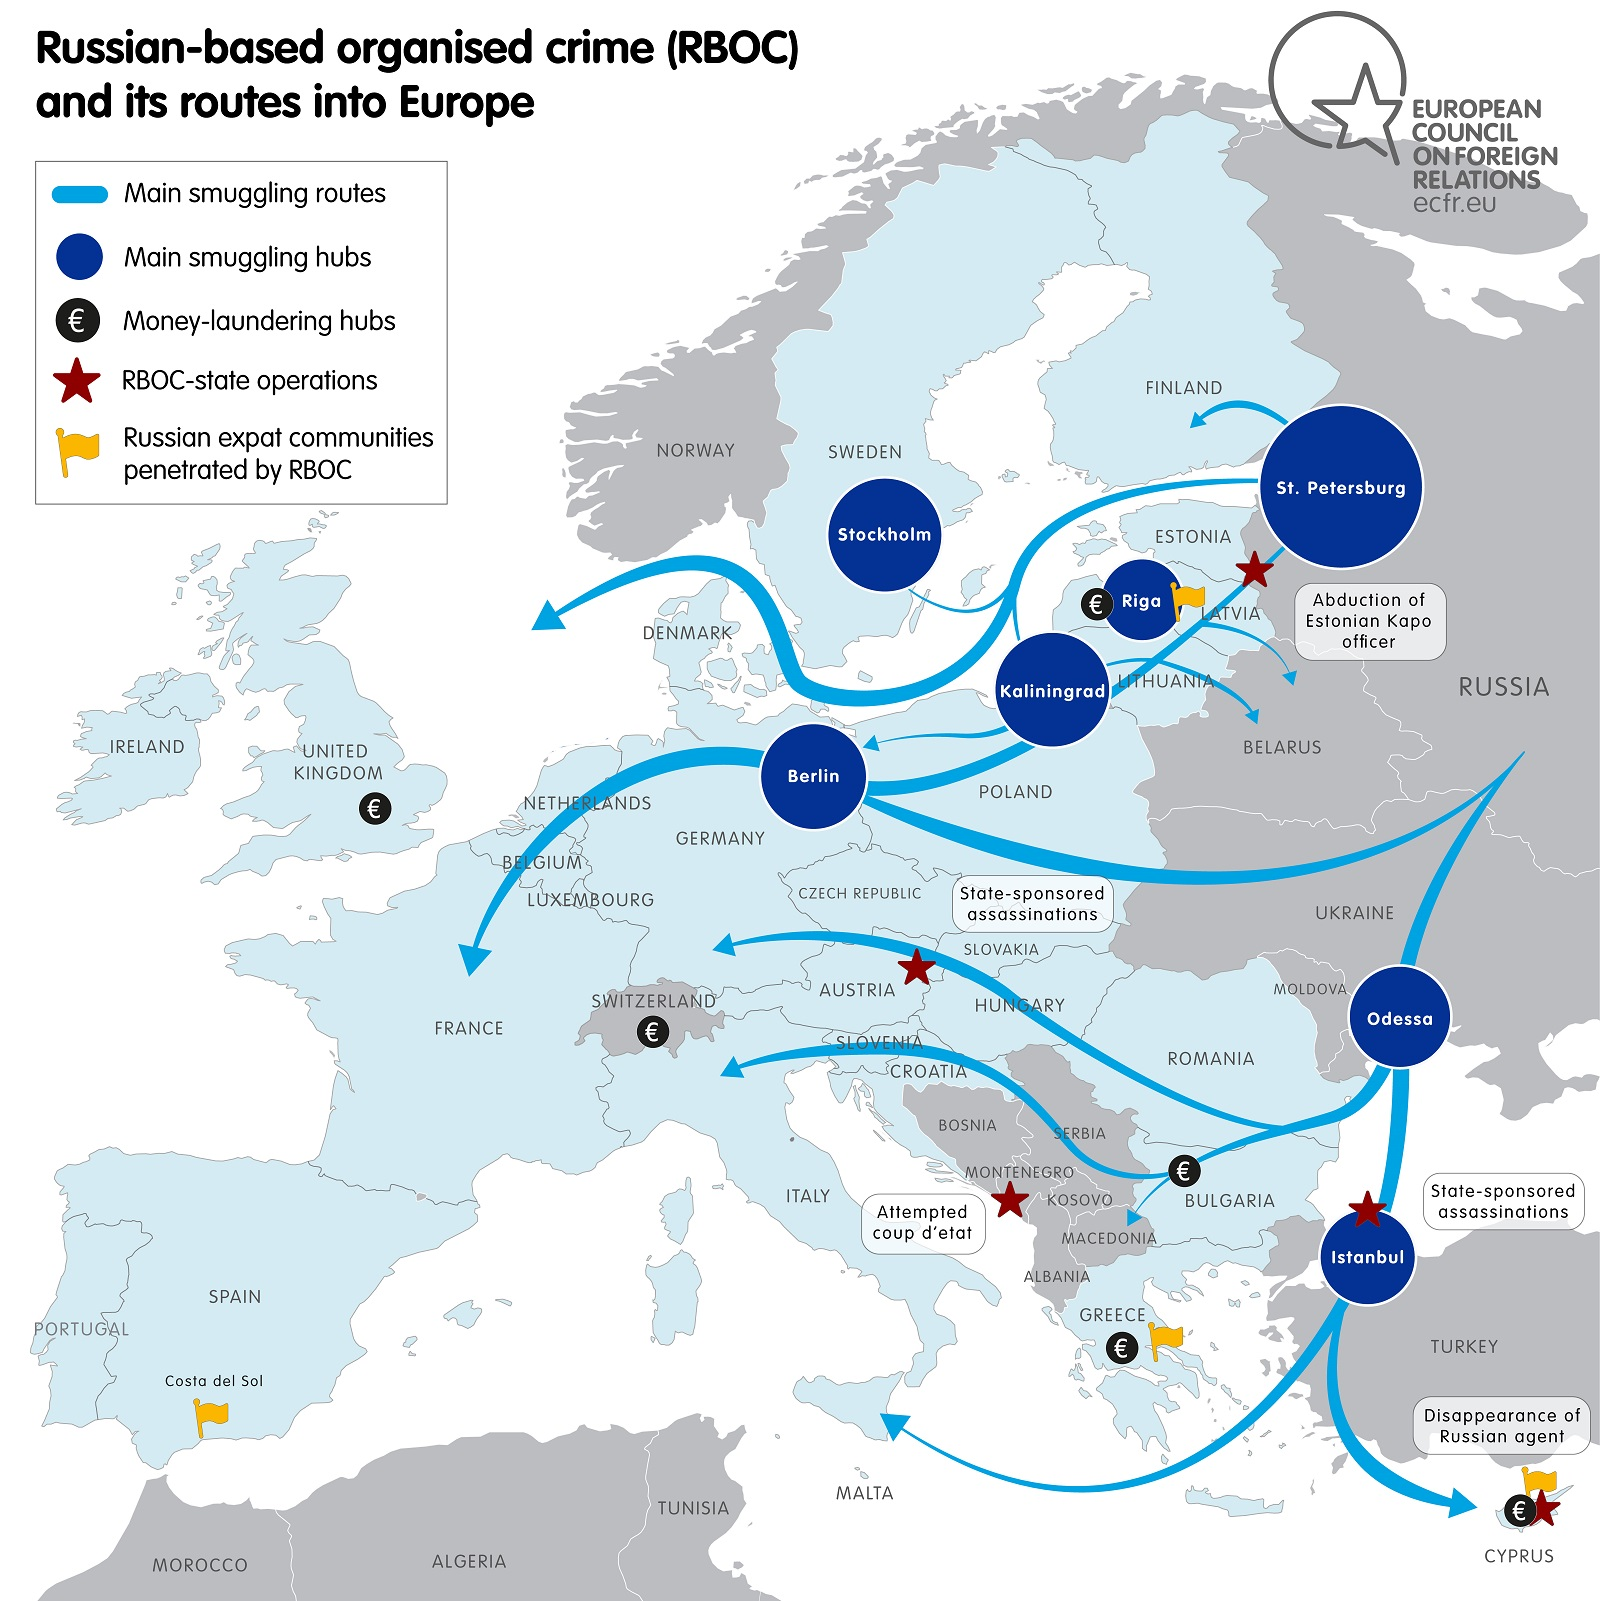 russia and europes relationship